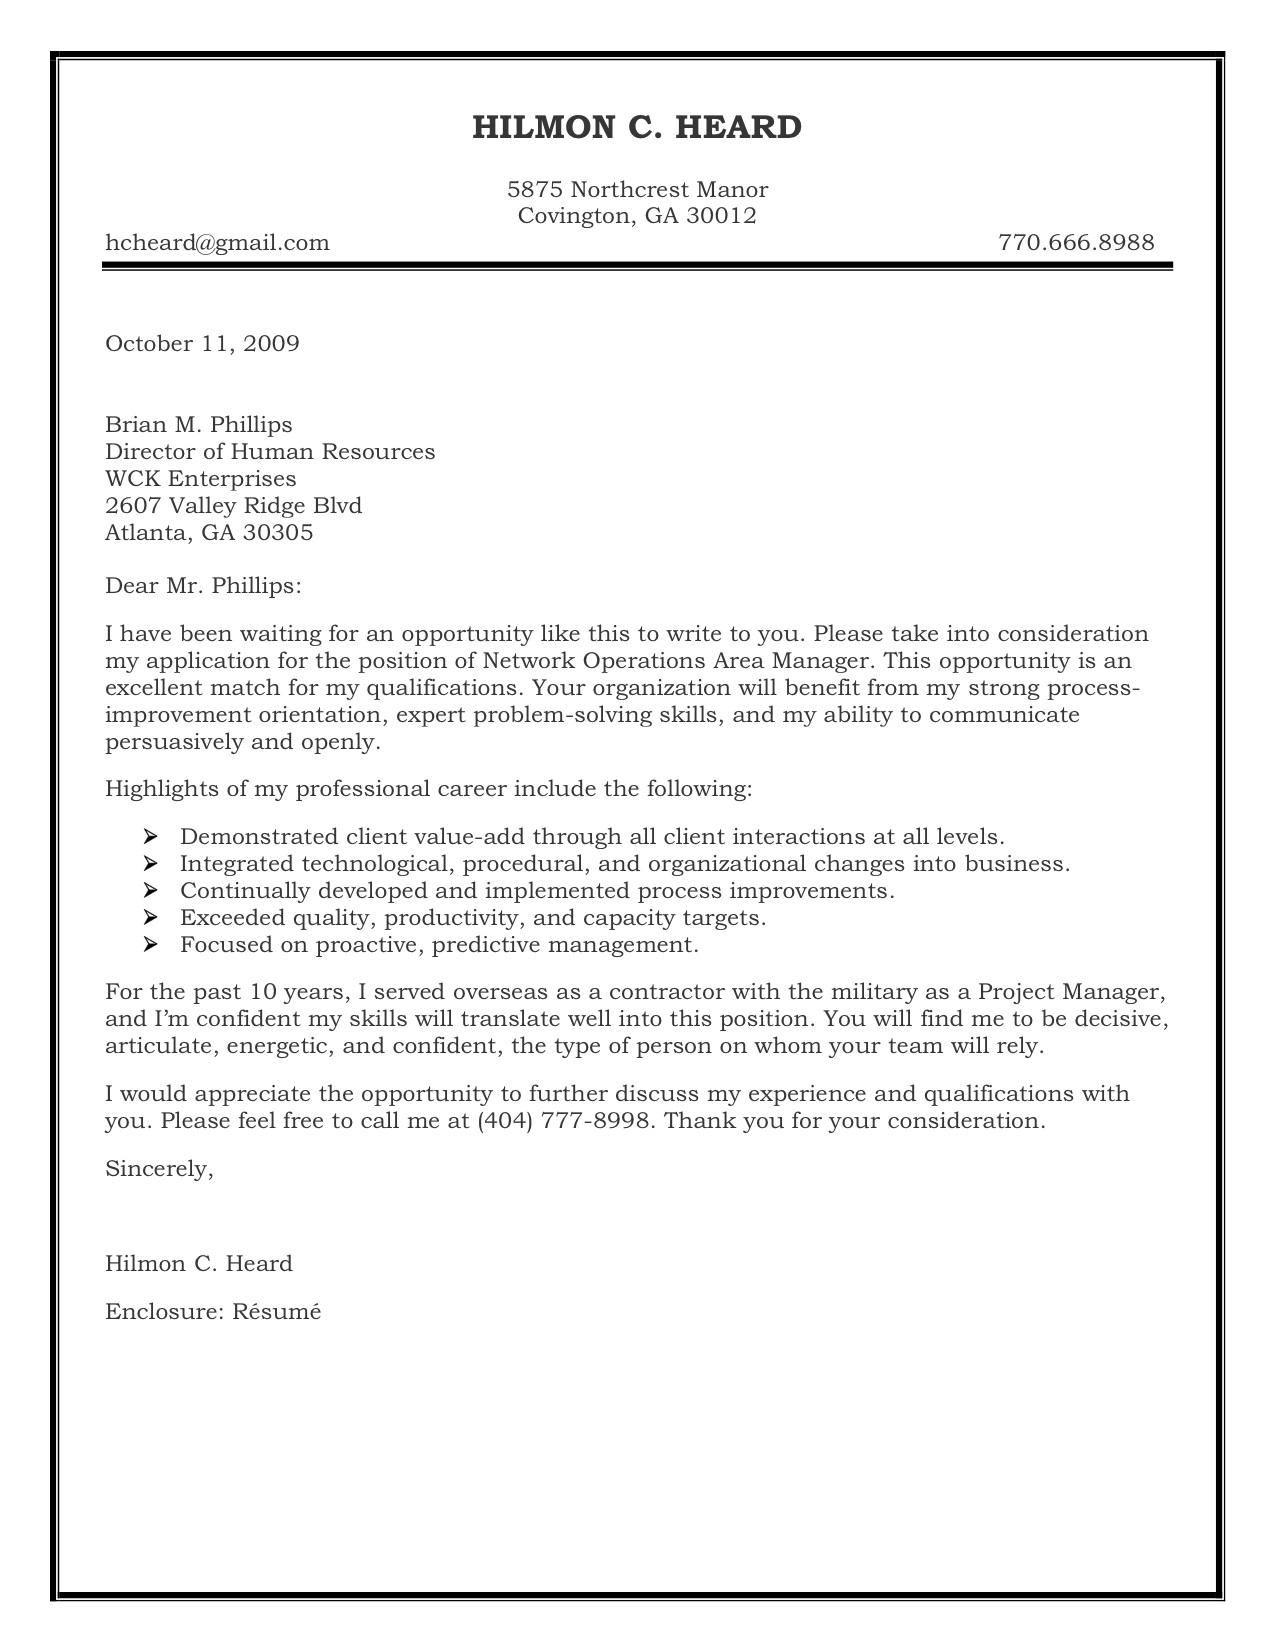 sample cover letter for resume - Example Of Cover Letters For Resumes